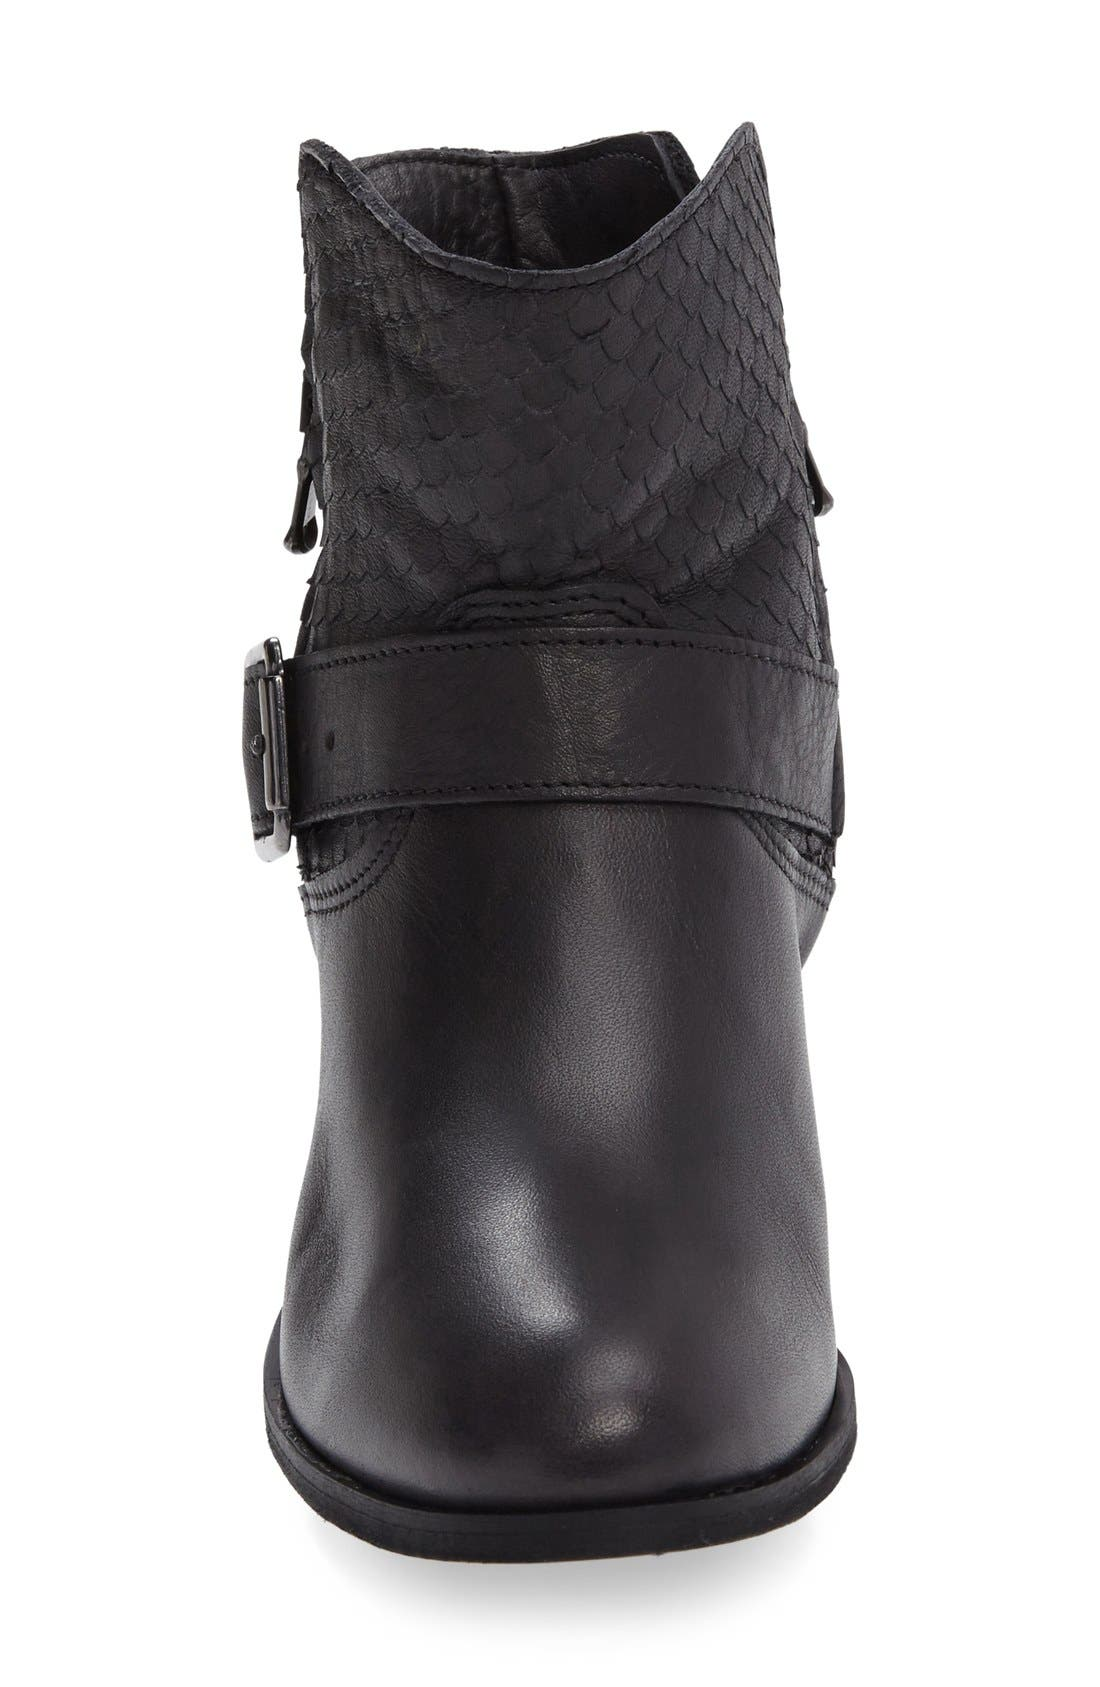 Alternate Image 3  - CrossTown Chiara 22 Textured Buckle Strap Bootie (Women)